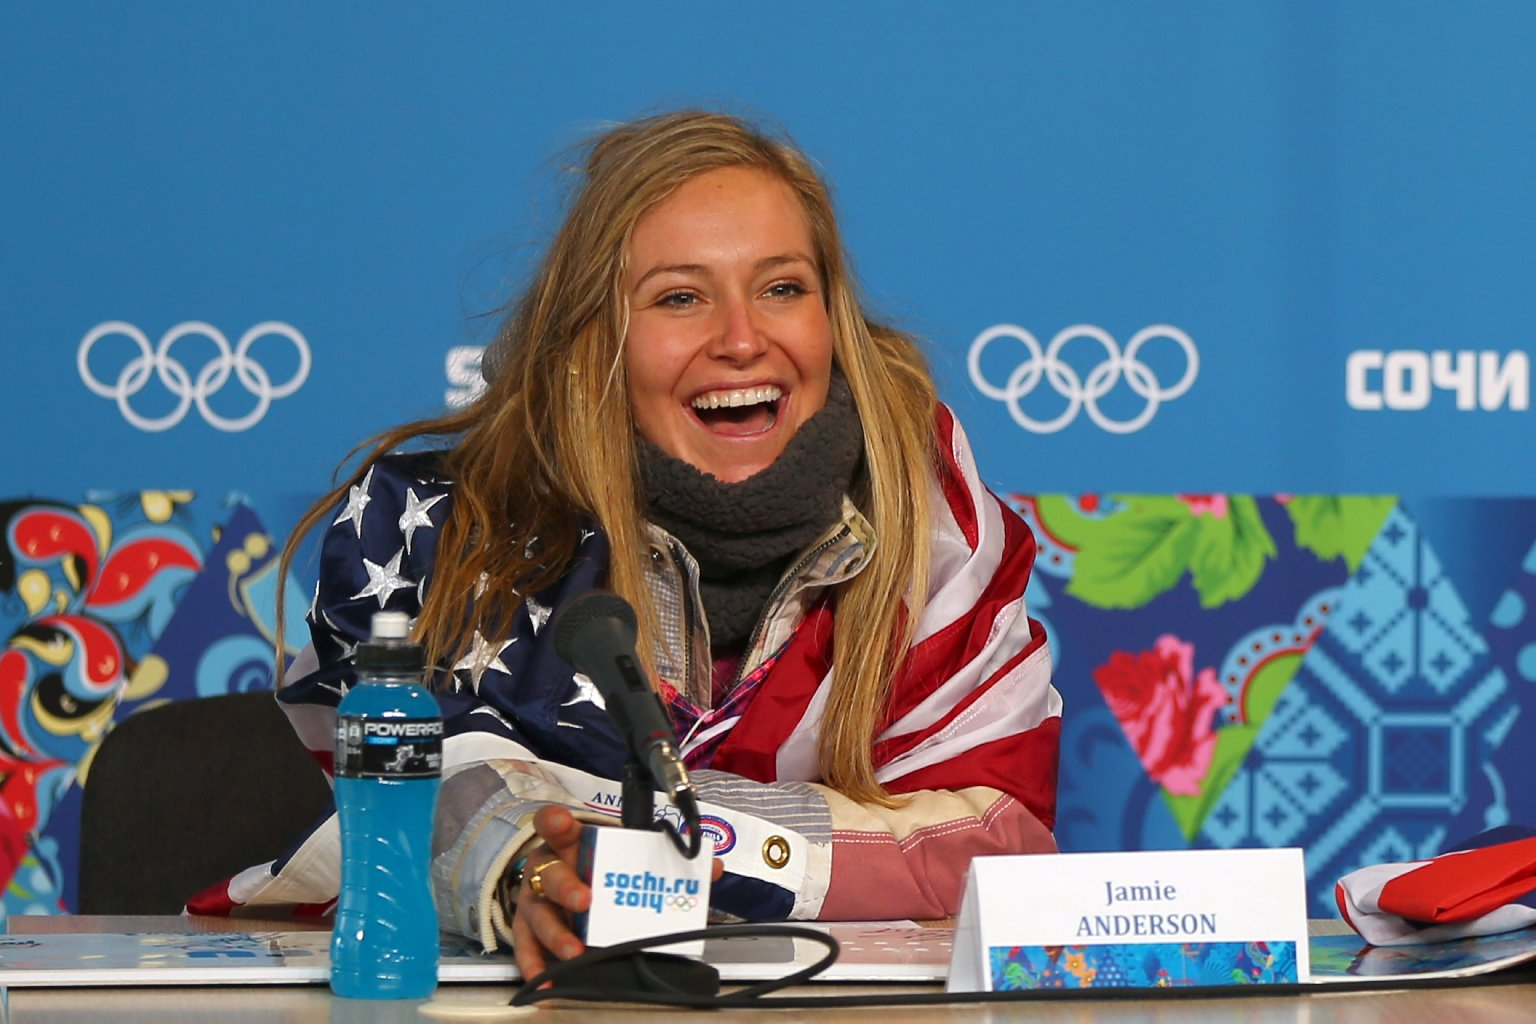 South Lake Tahoe's Jamie Anderson Wins Slopestyle Gold